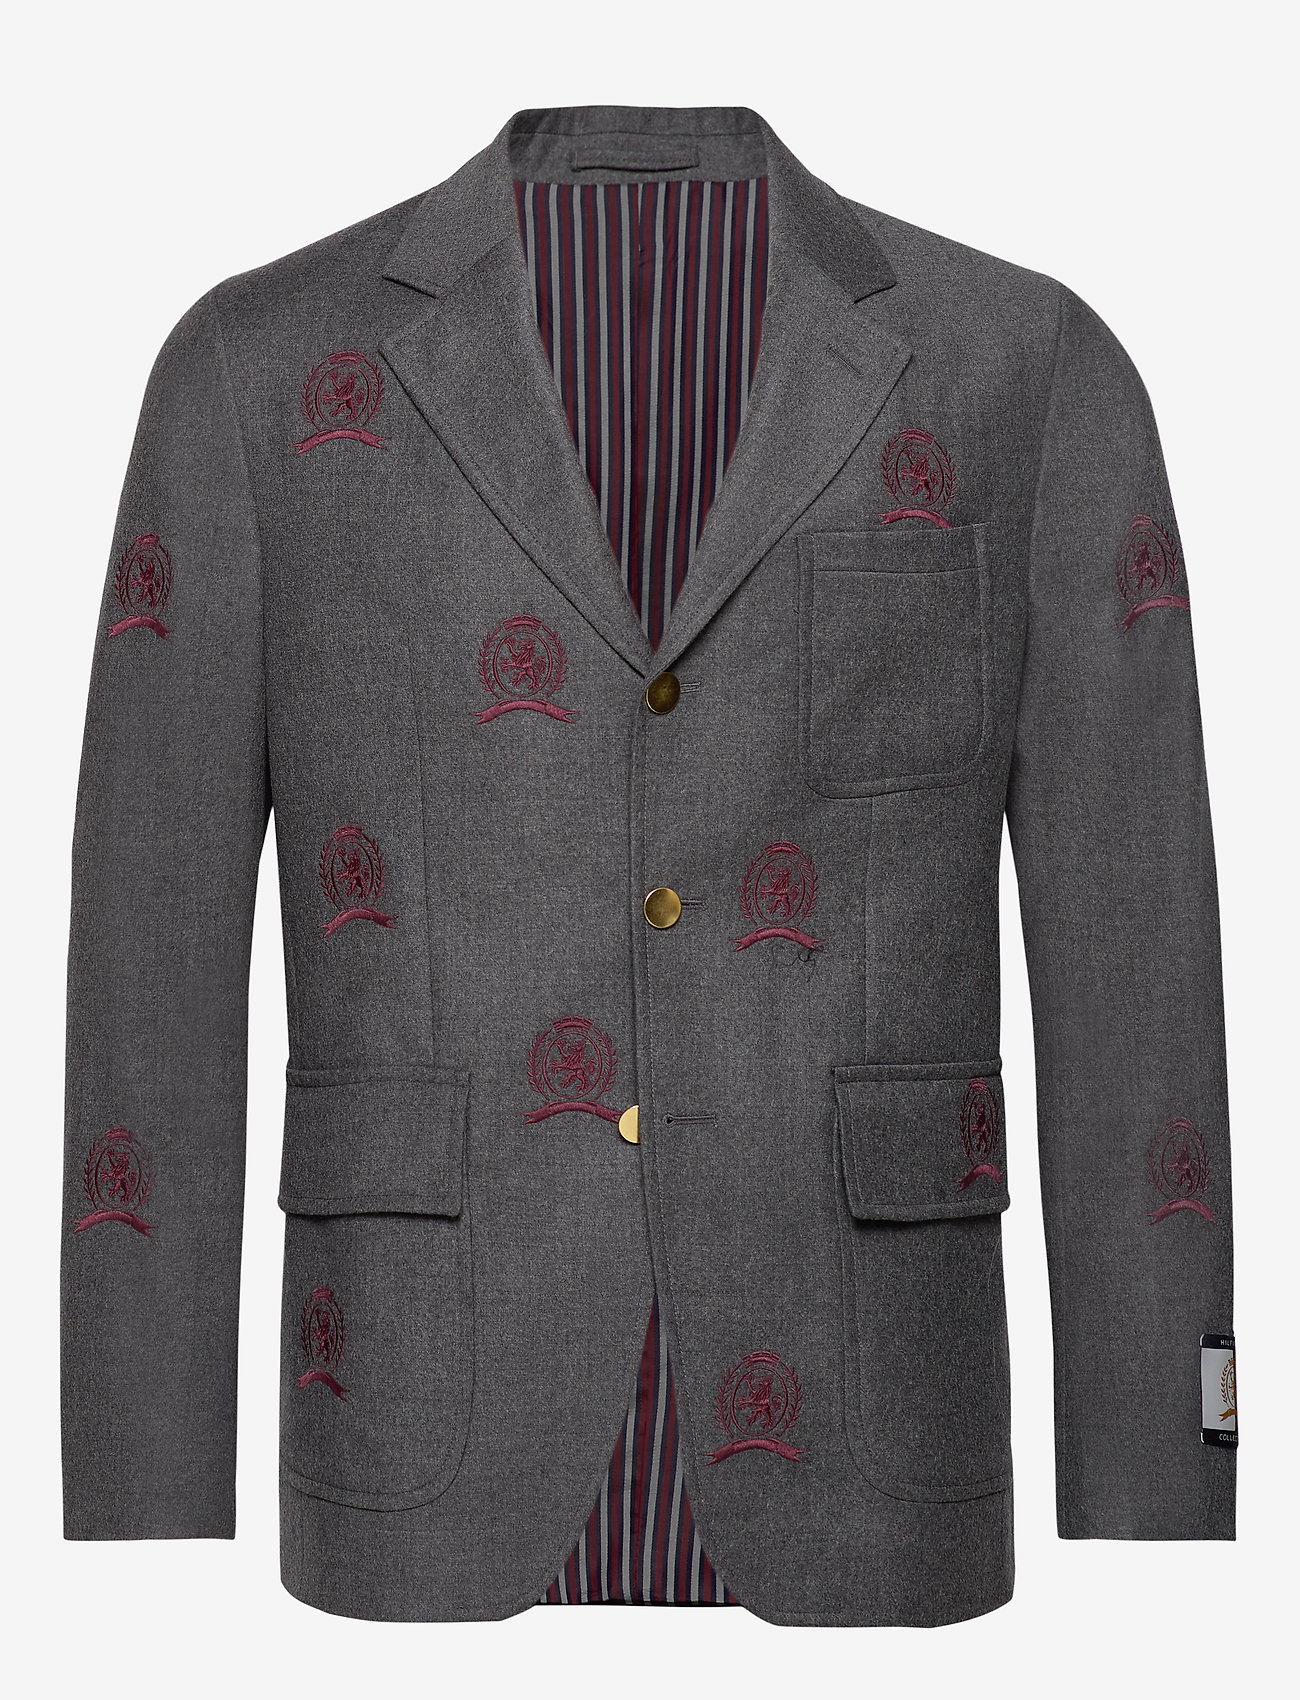 Hilfiger Collection - HCM SUIT SEP BLAZER EMBROIDERY - costumes simple boutonnage - charcoal heather - 0